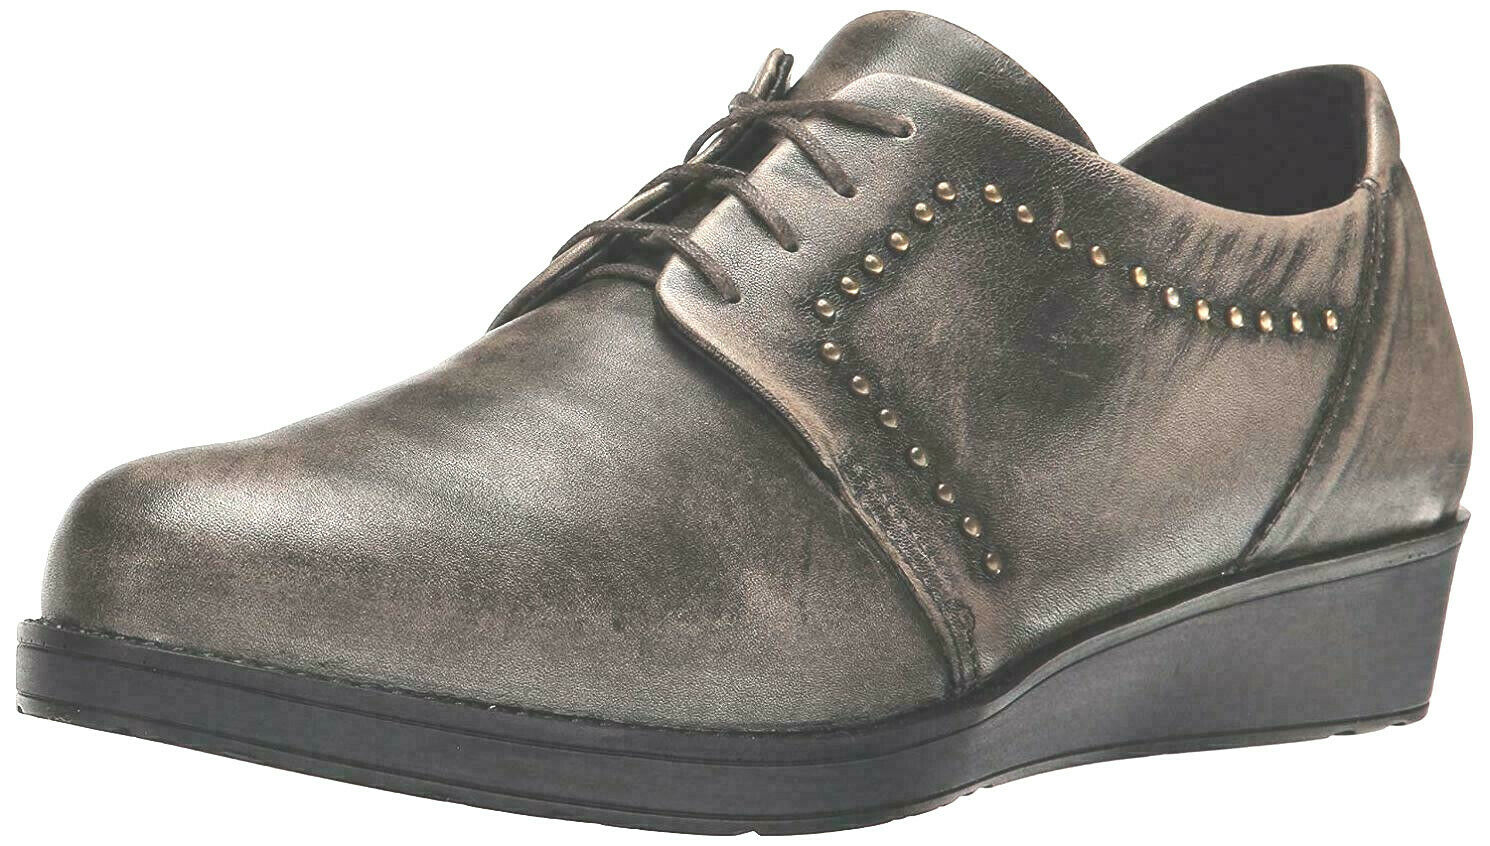 Naot Embrace Flat Vintage grigio Leather, Dimensione 35 EUR   4.5 US